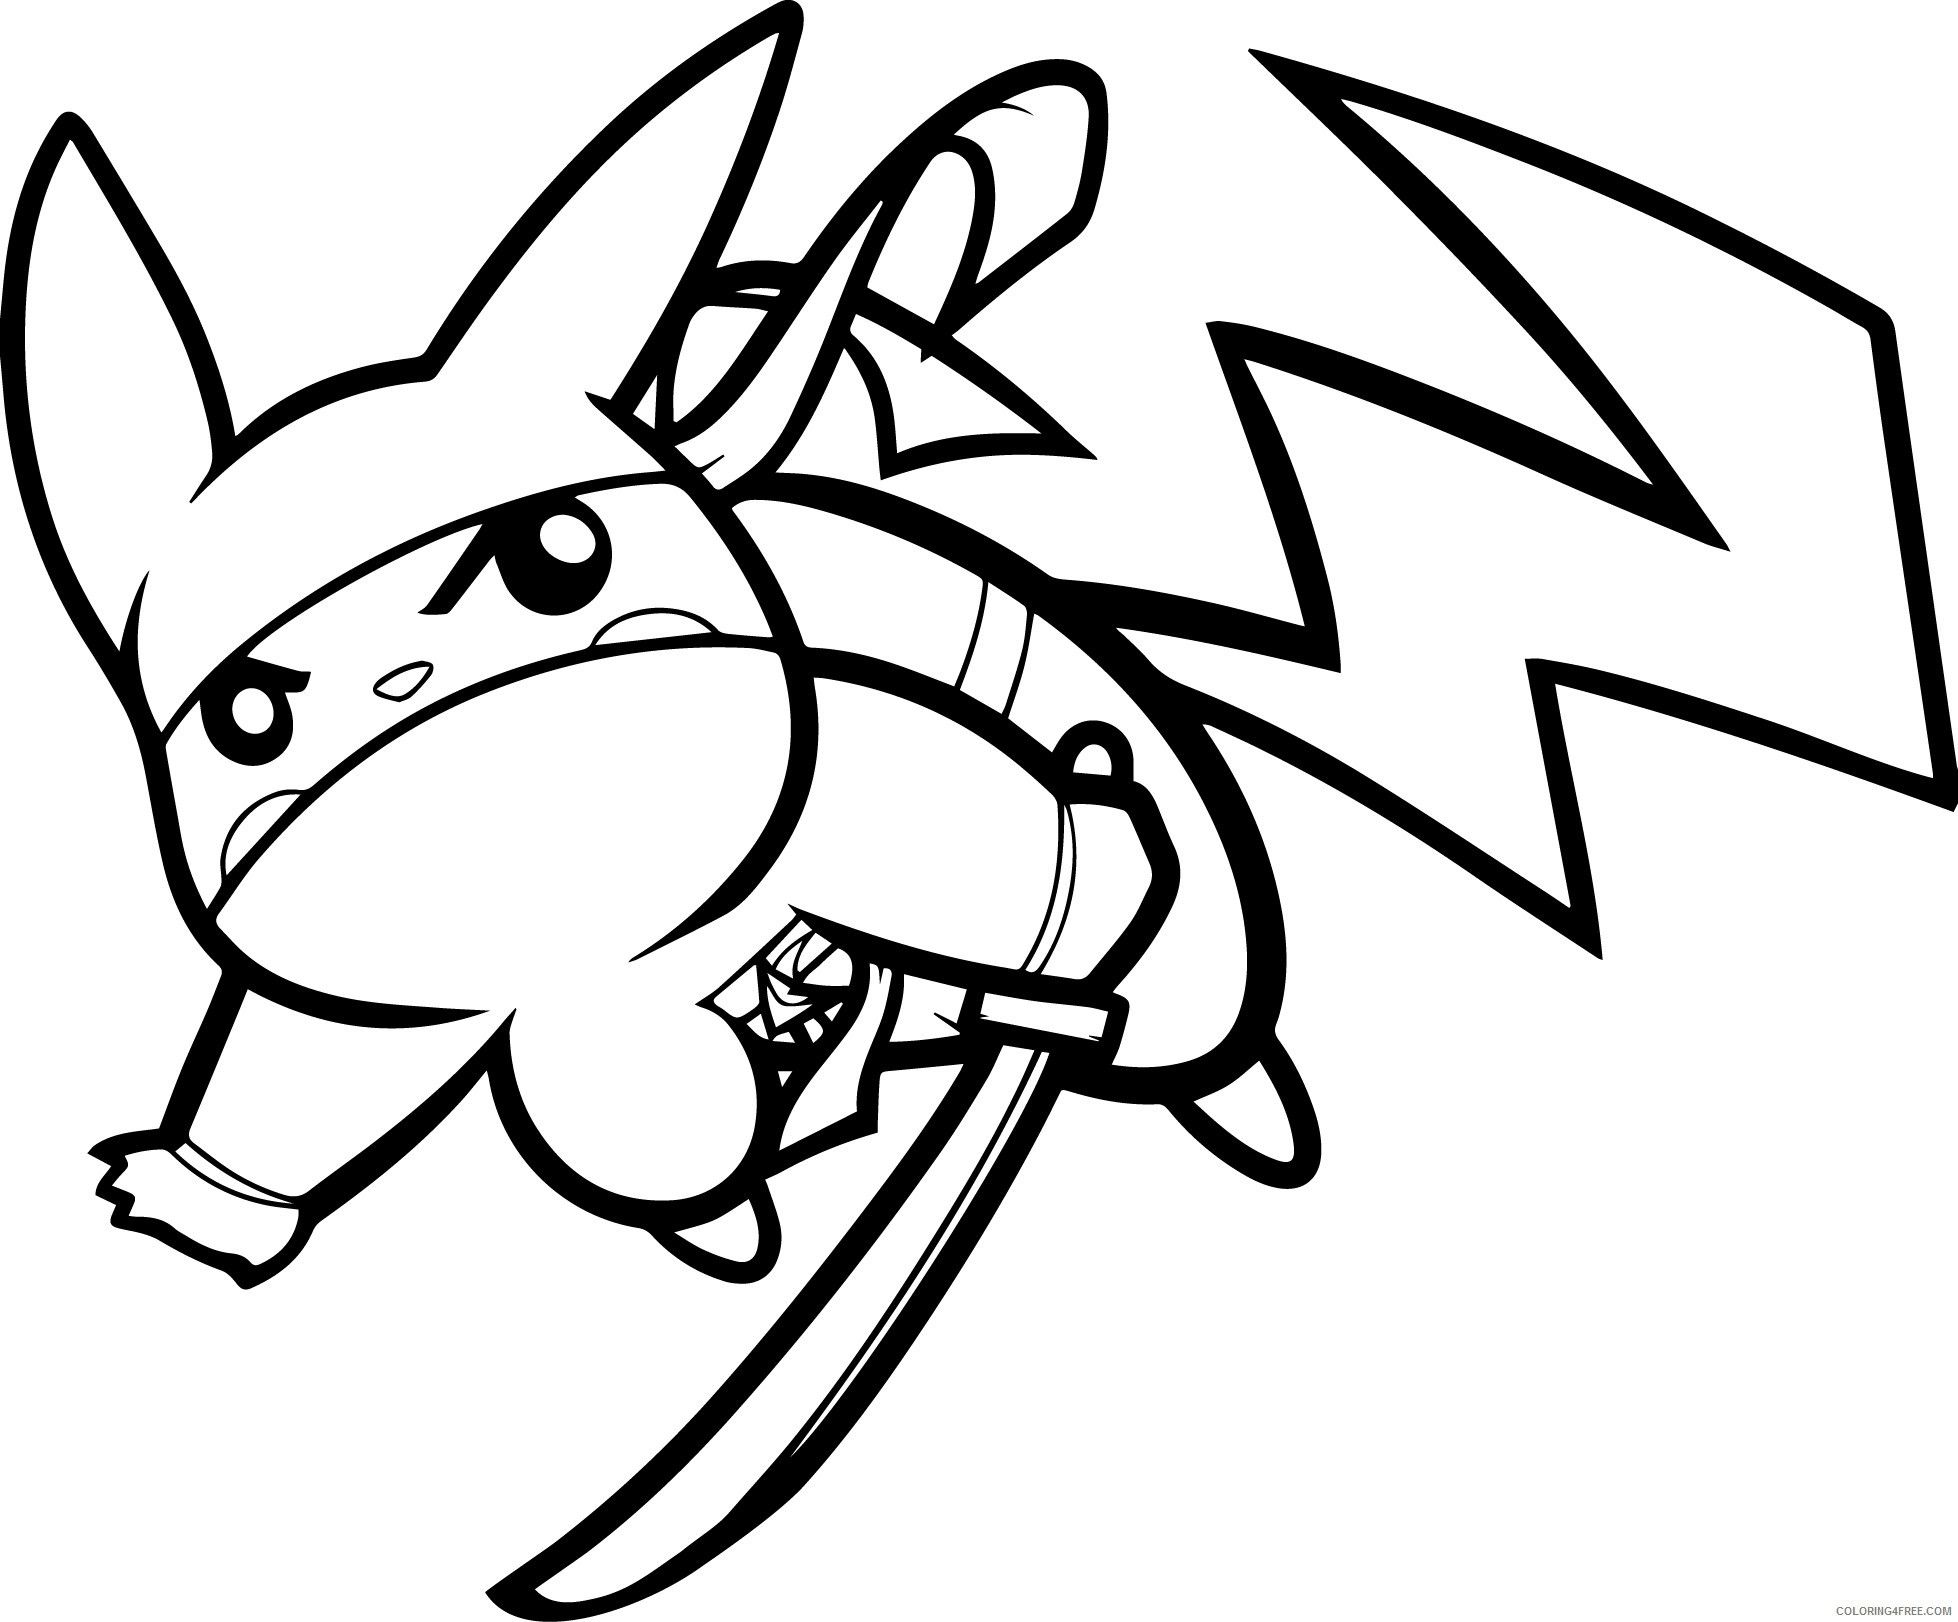 Pikachu Ninja Coloring Page From